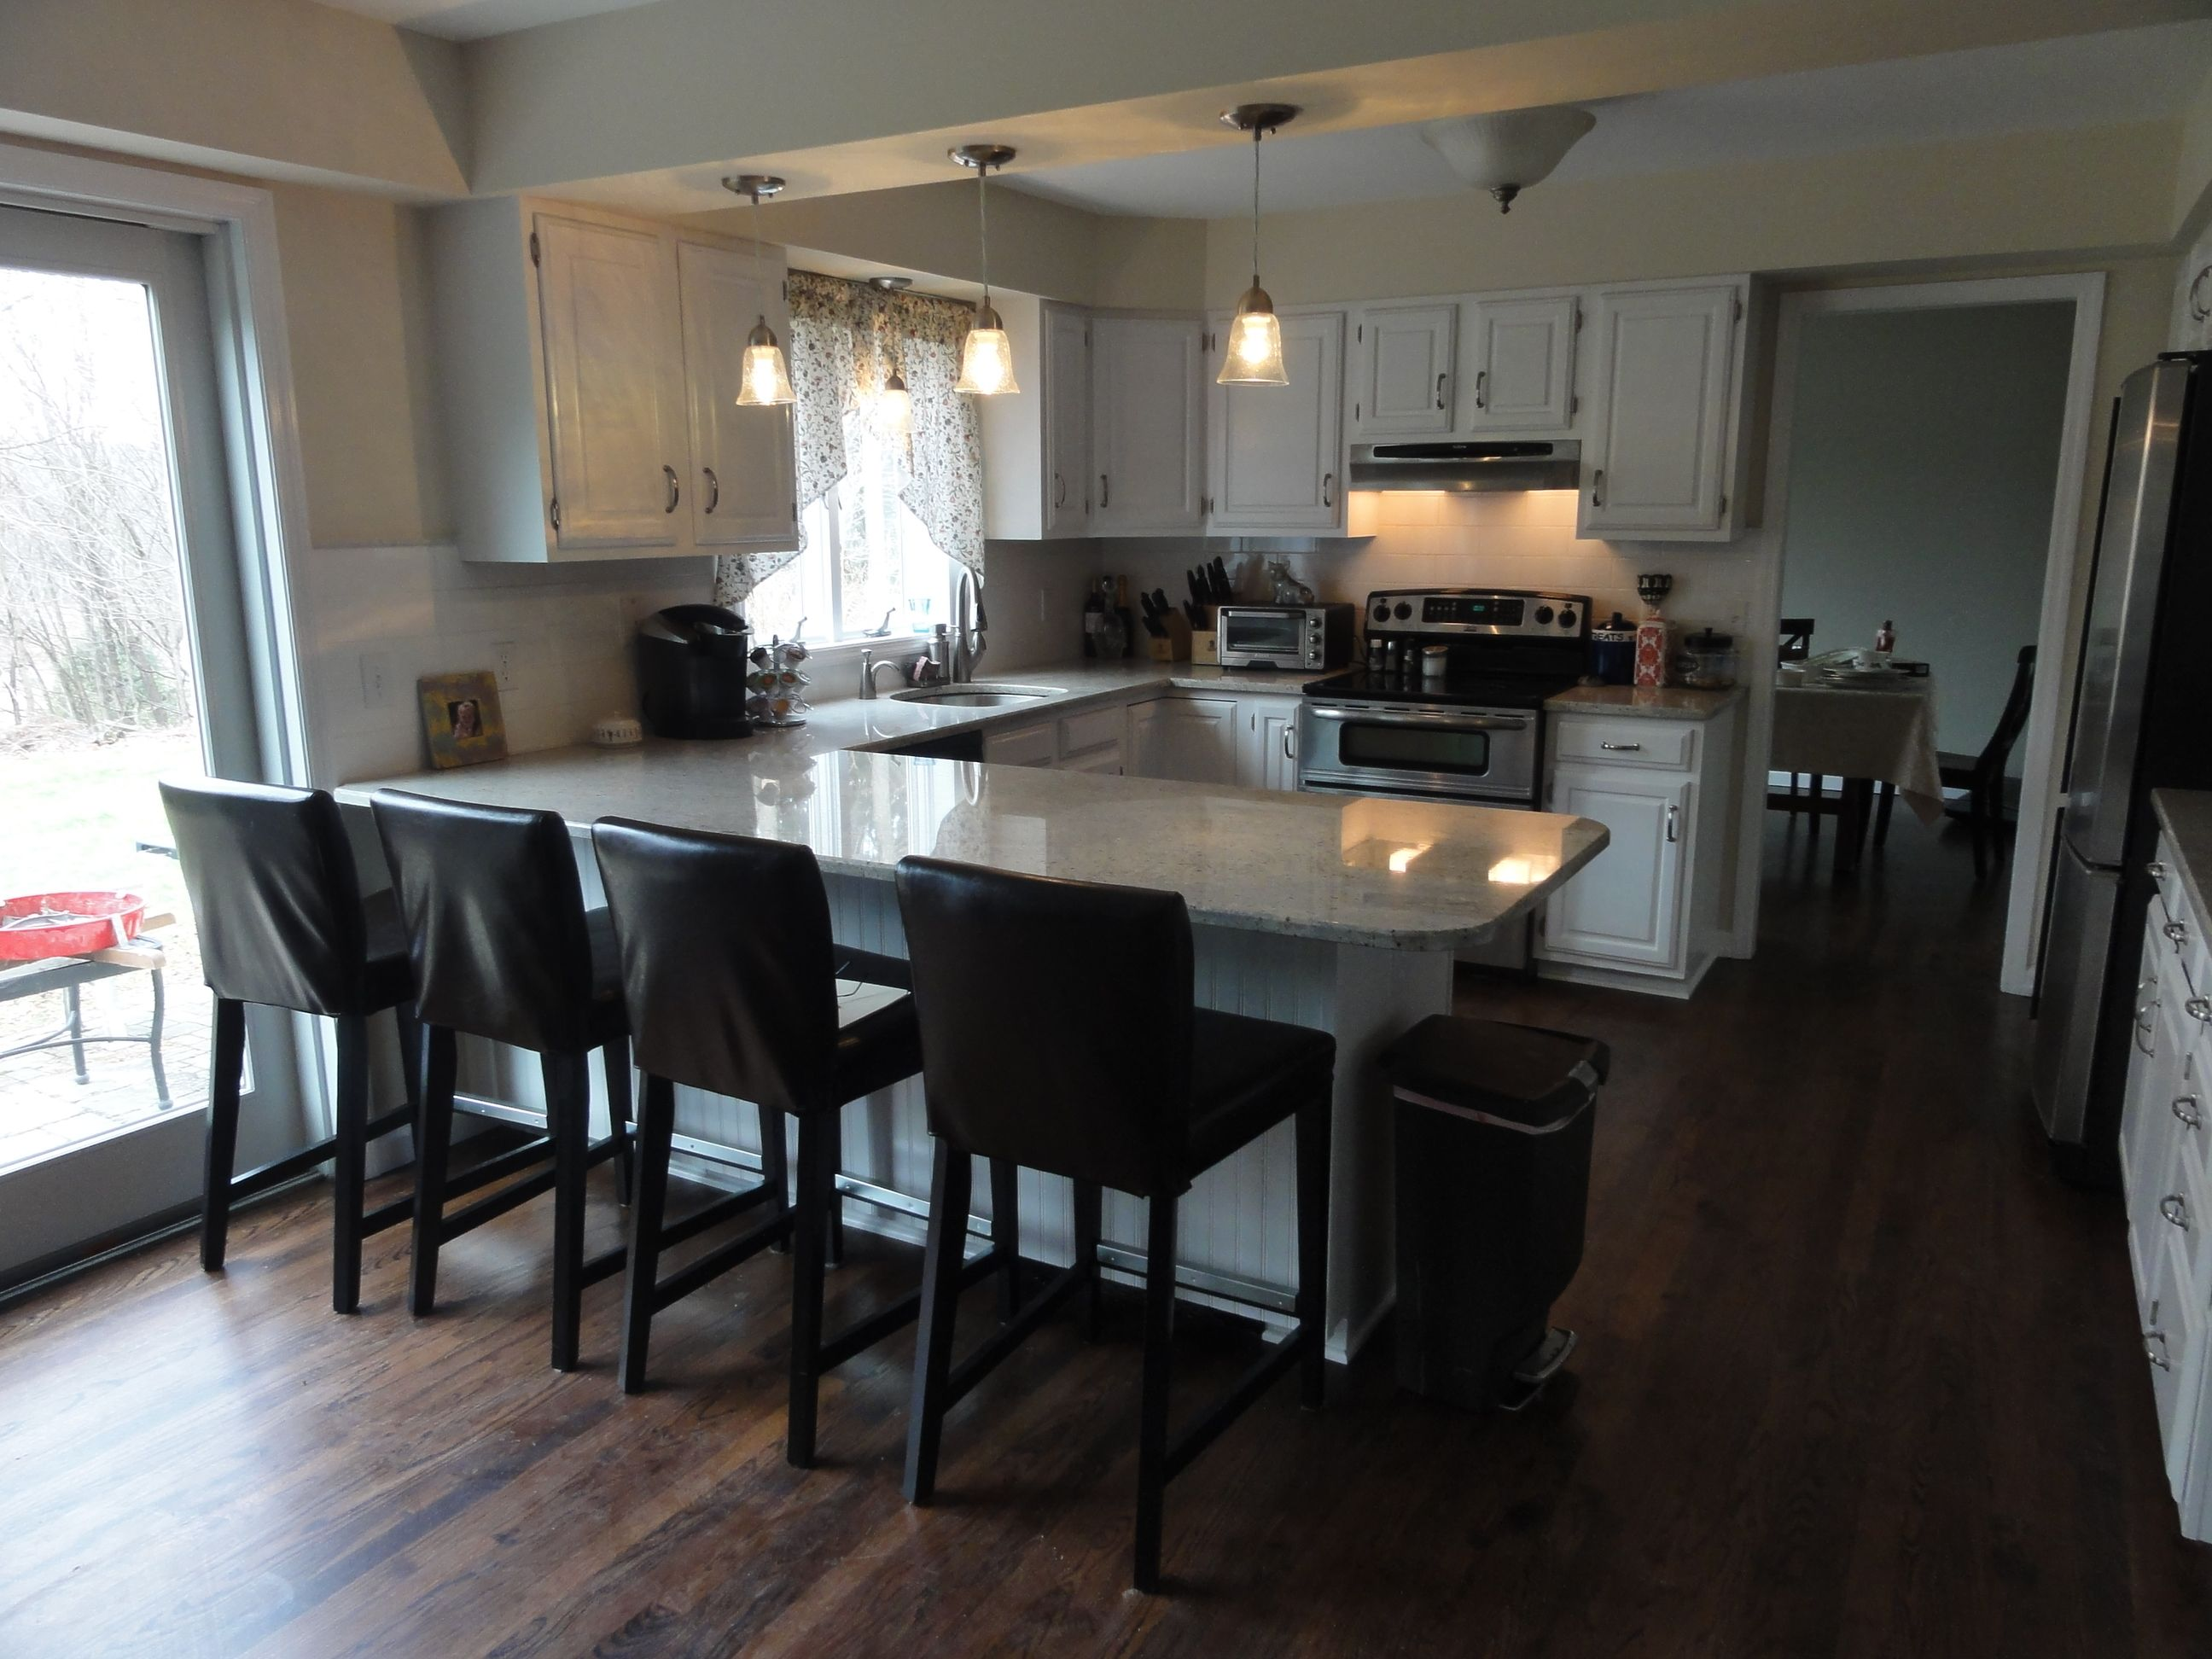 kitchen islands kitchen island chairs Furniture Kitchen Picturesque Kitchen Island With Seating Designs And Decors Lovable White Wooden And Glossy Marble Top Kitchen Island With Seating And U